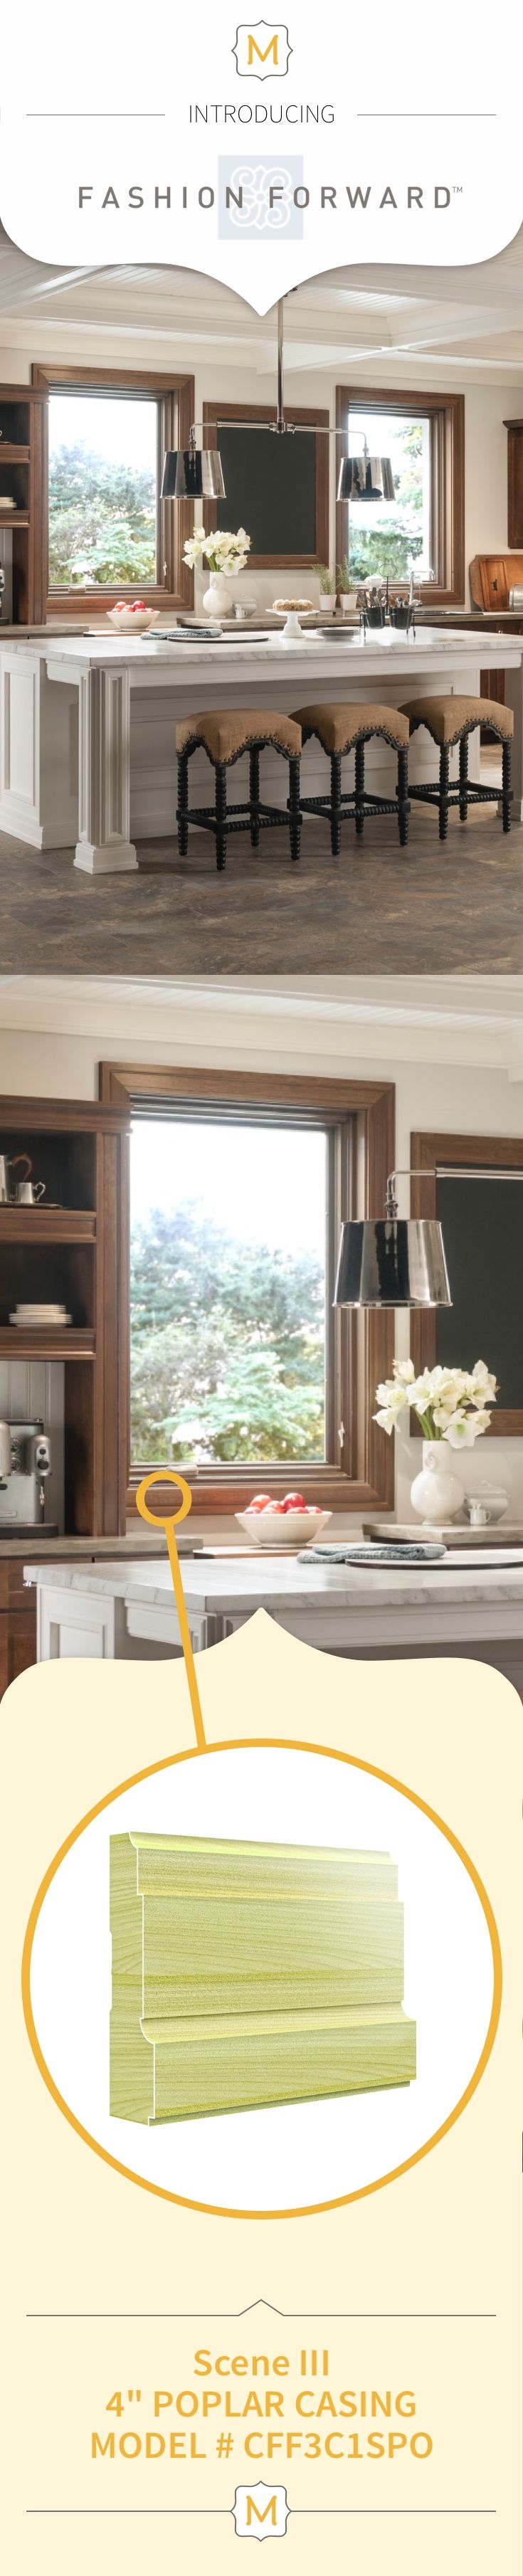 Metrie's Fashion Forward Collection trim elements are used in this classic kitchen to create a clean, timeless window frame (and we're loving it).